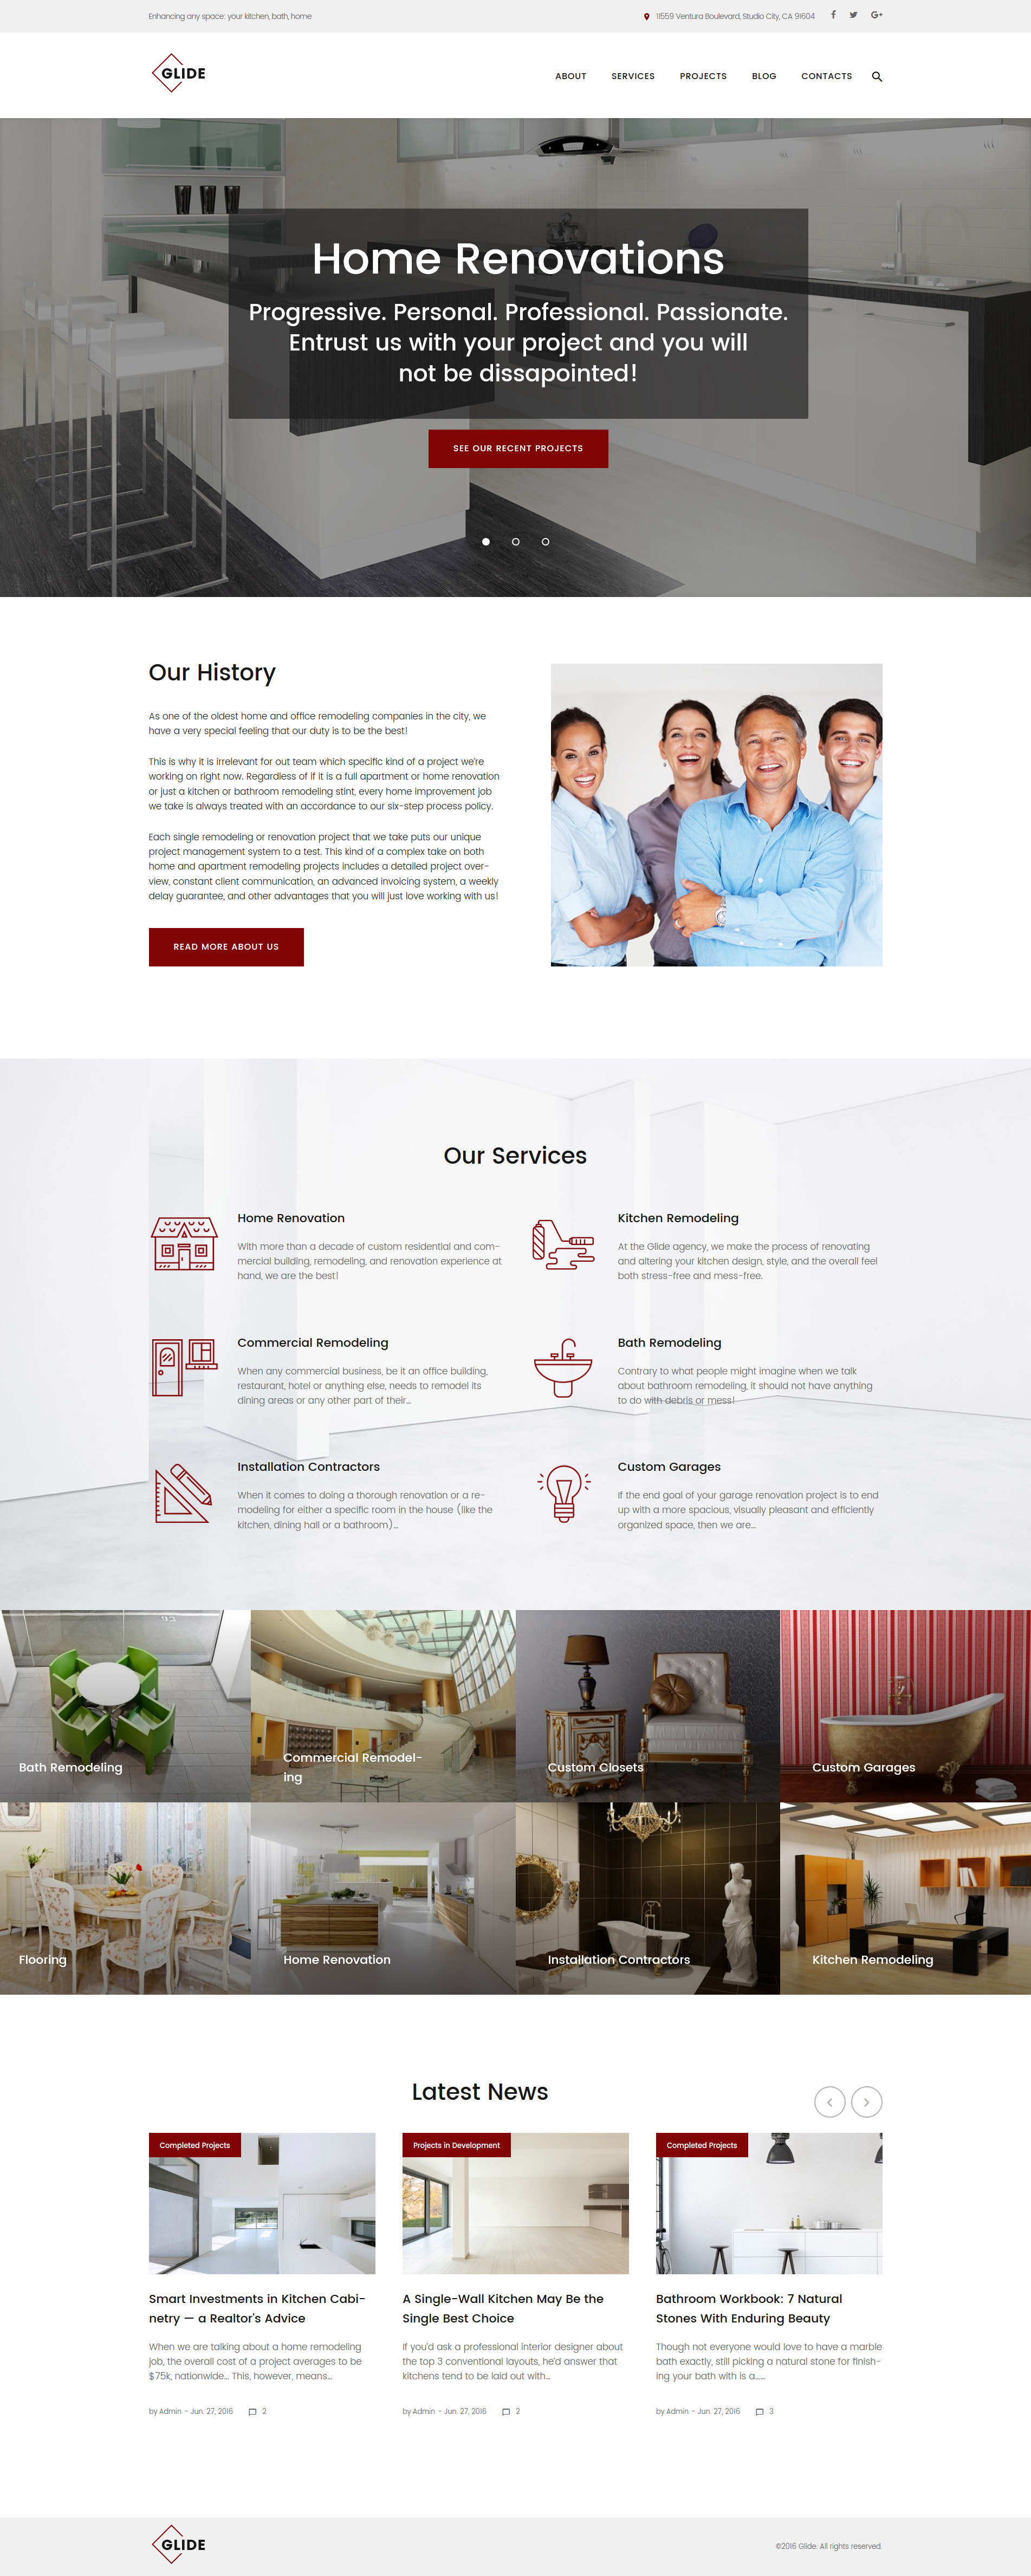 Glide - Home, Bath and Kitchen Renovation Company WordPress Theme - screenshot